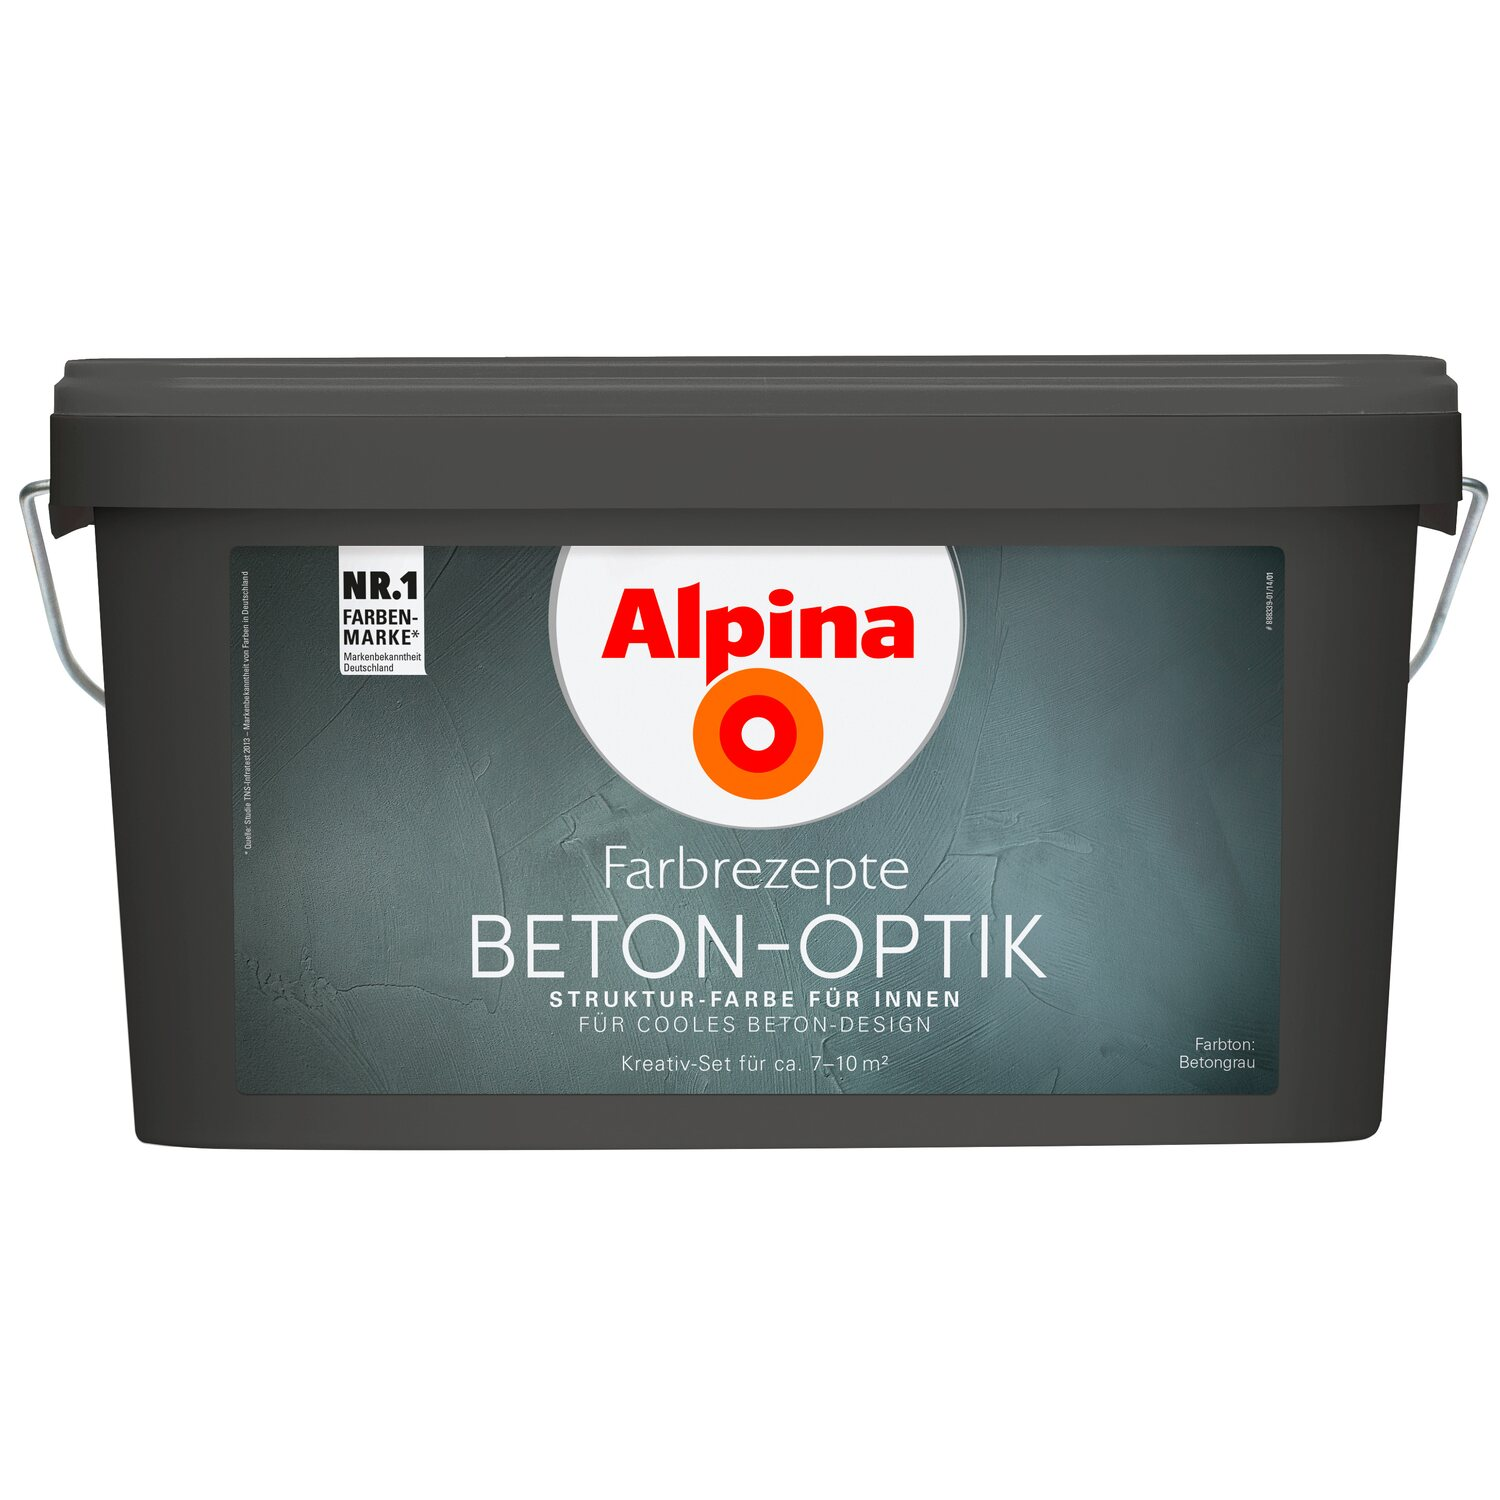 Alpina Farbrezepte Beton Optik Komplett Set